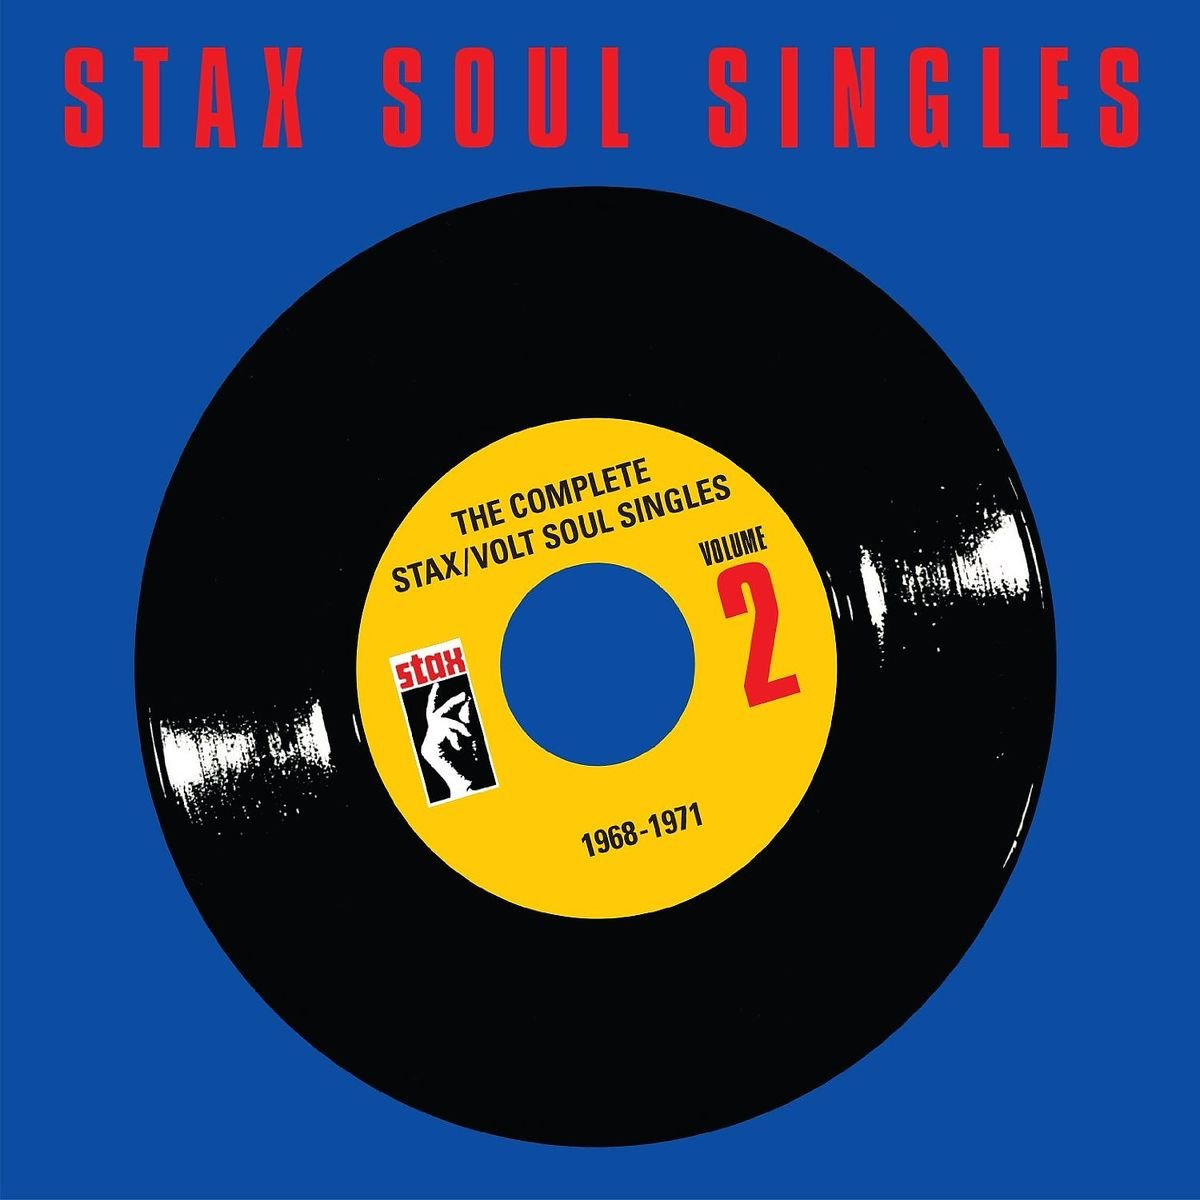 The Complete Stax/Volt Soul Singles: 1968-1971 by Stax